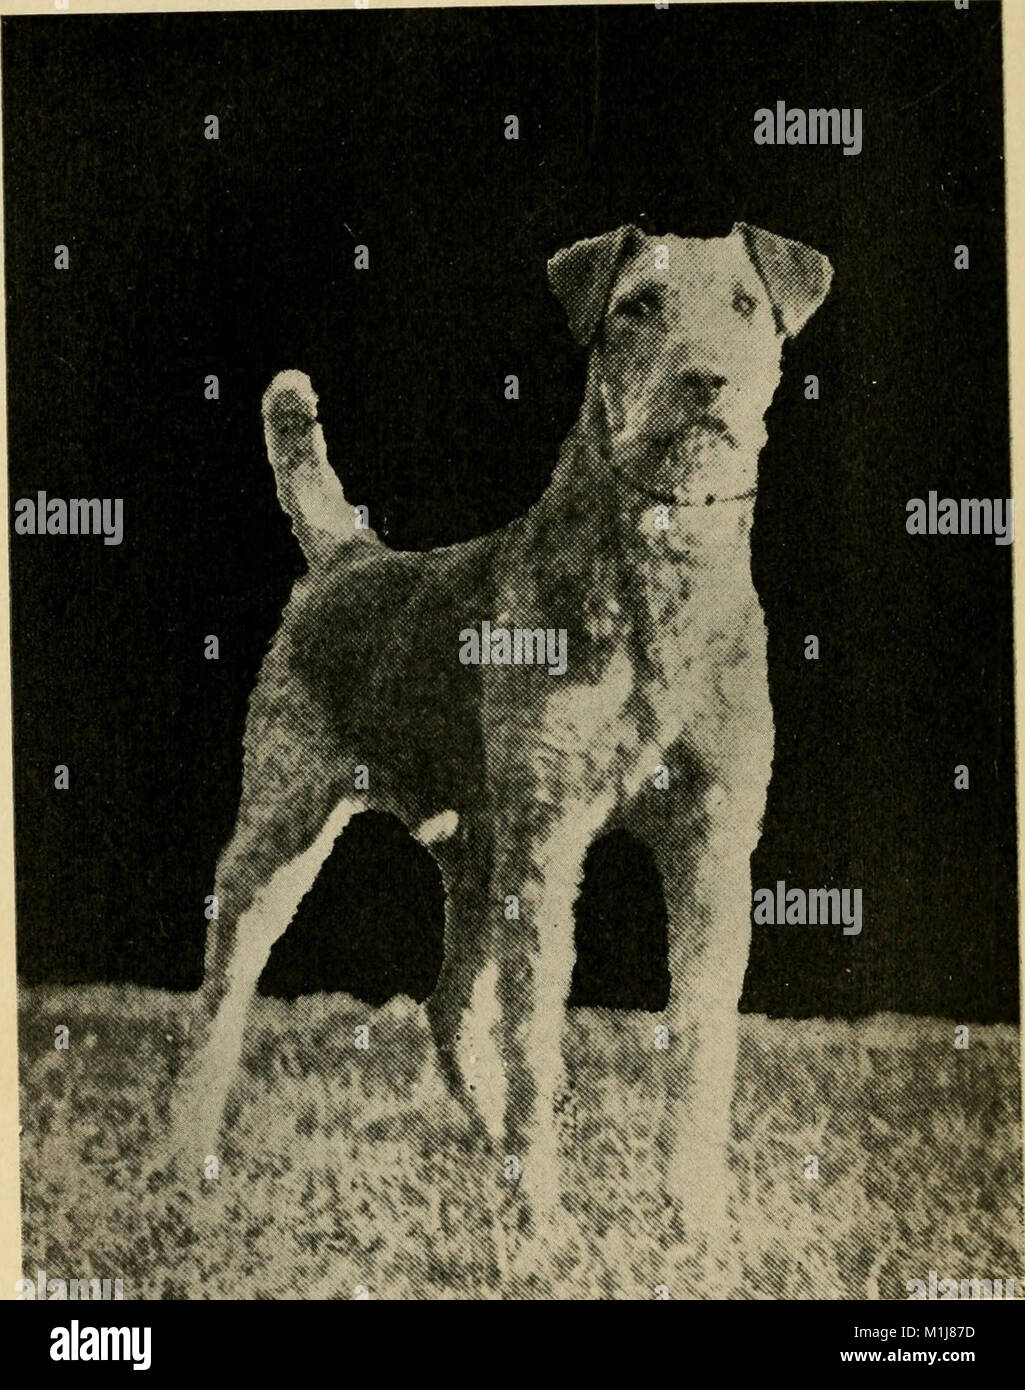 All about Airedales